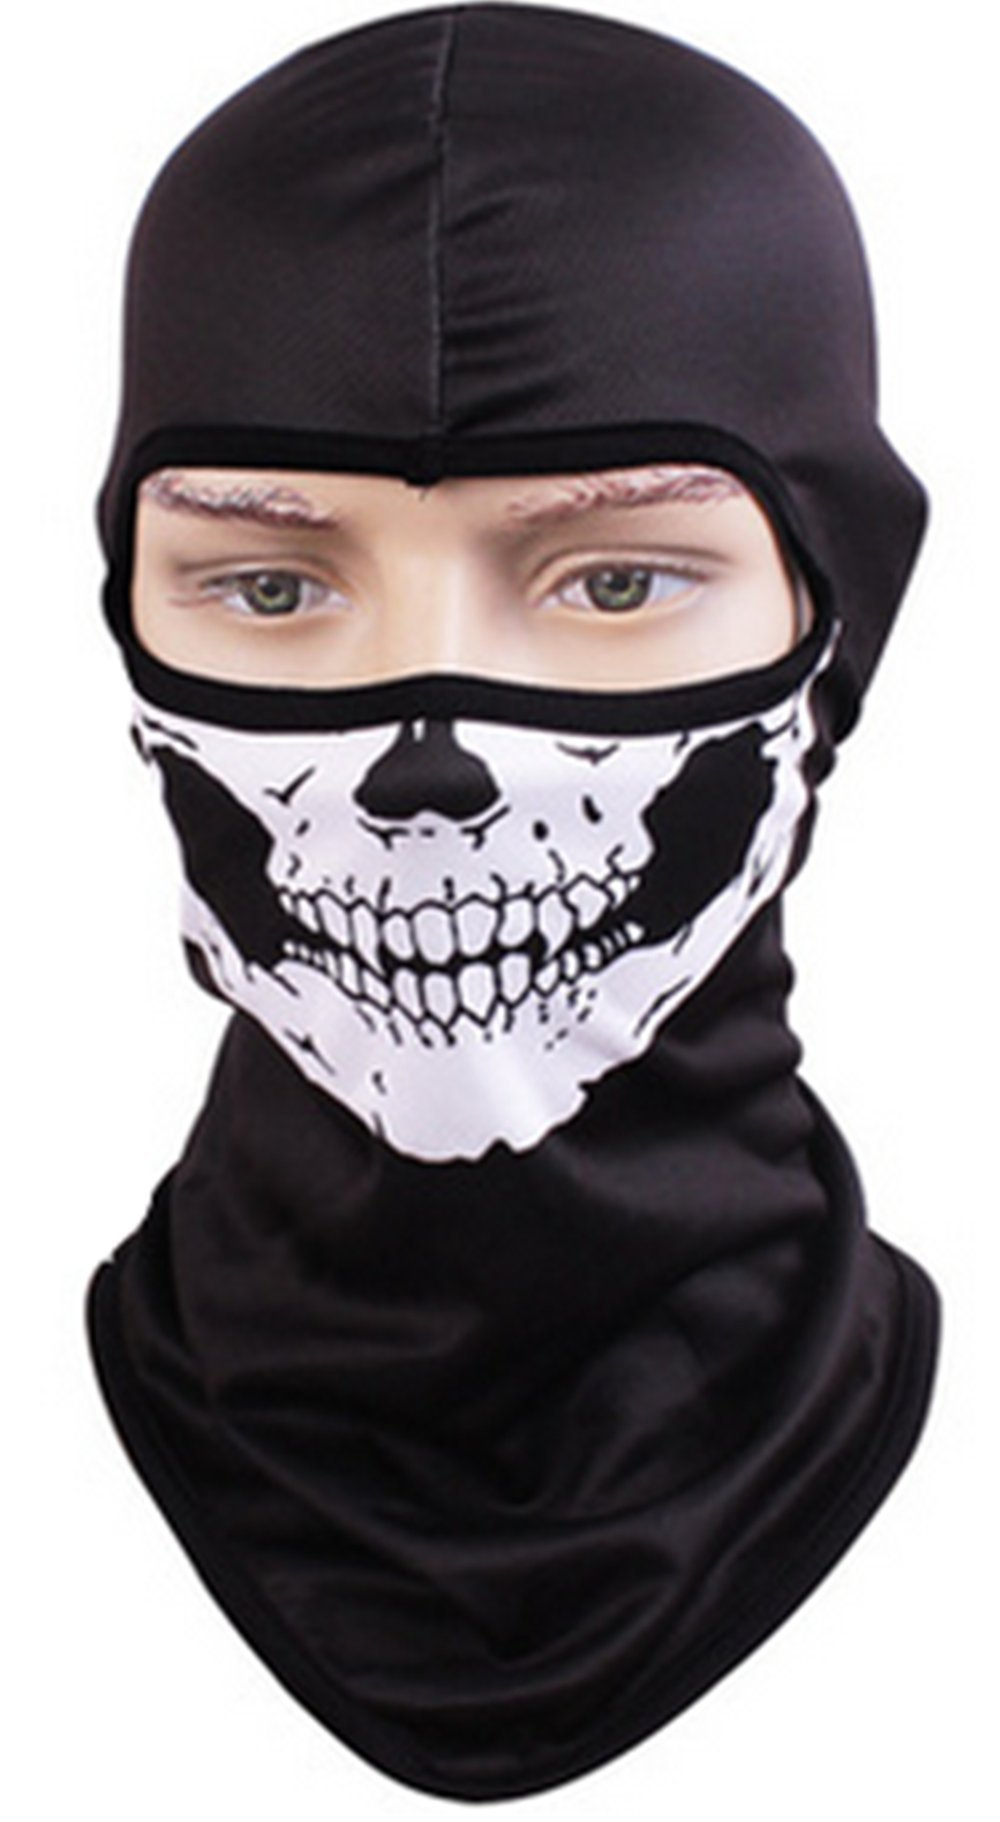 Quick Drying Breathable Mask, Men and Women Personality, Outdoor Riding, Sunscreen, CS Headgear, Animal Mask, Masked Hat(skull)